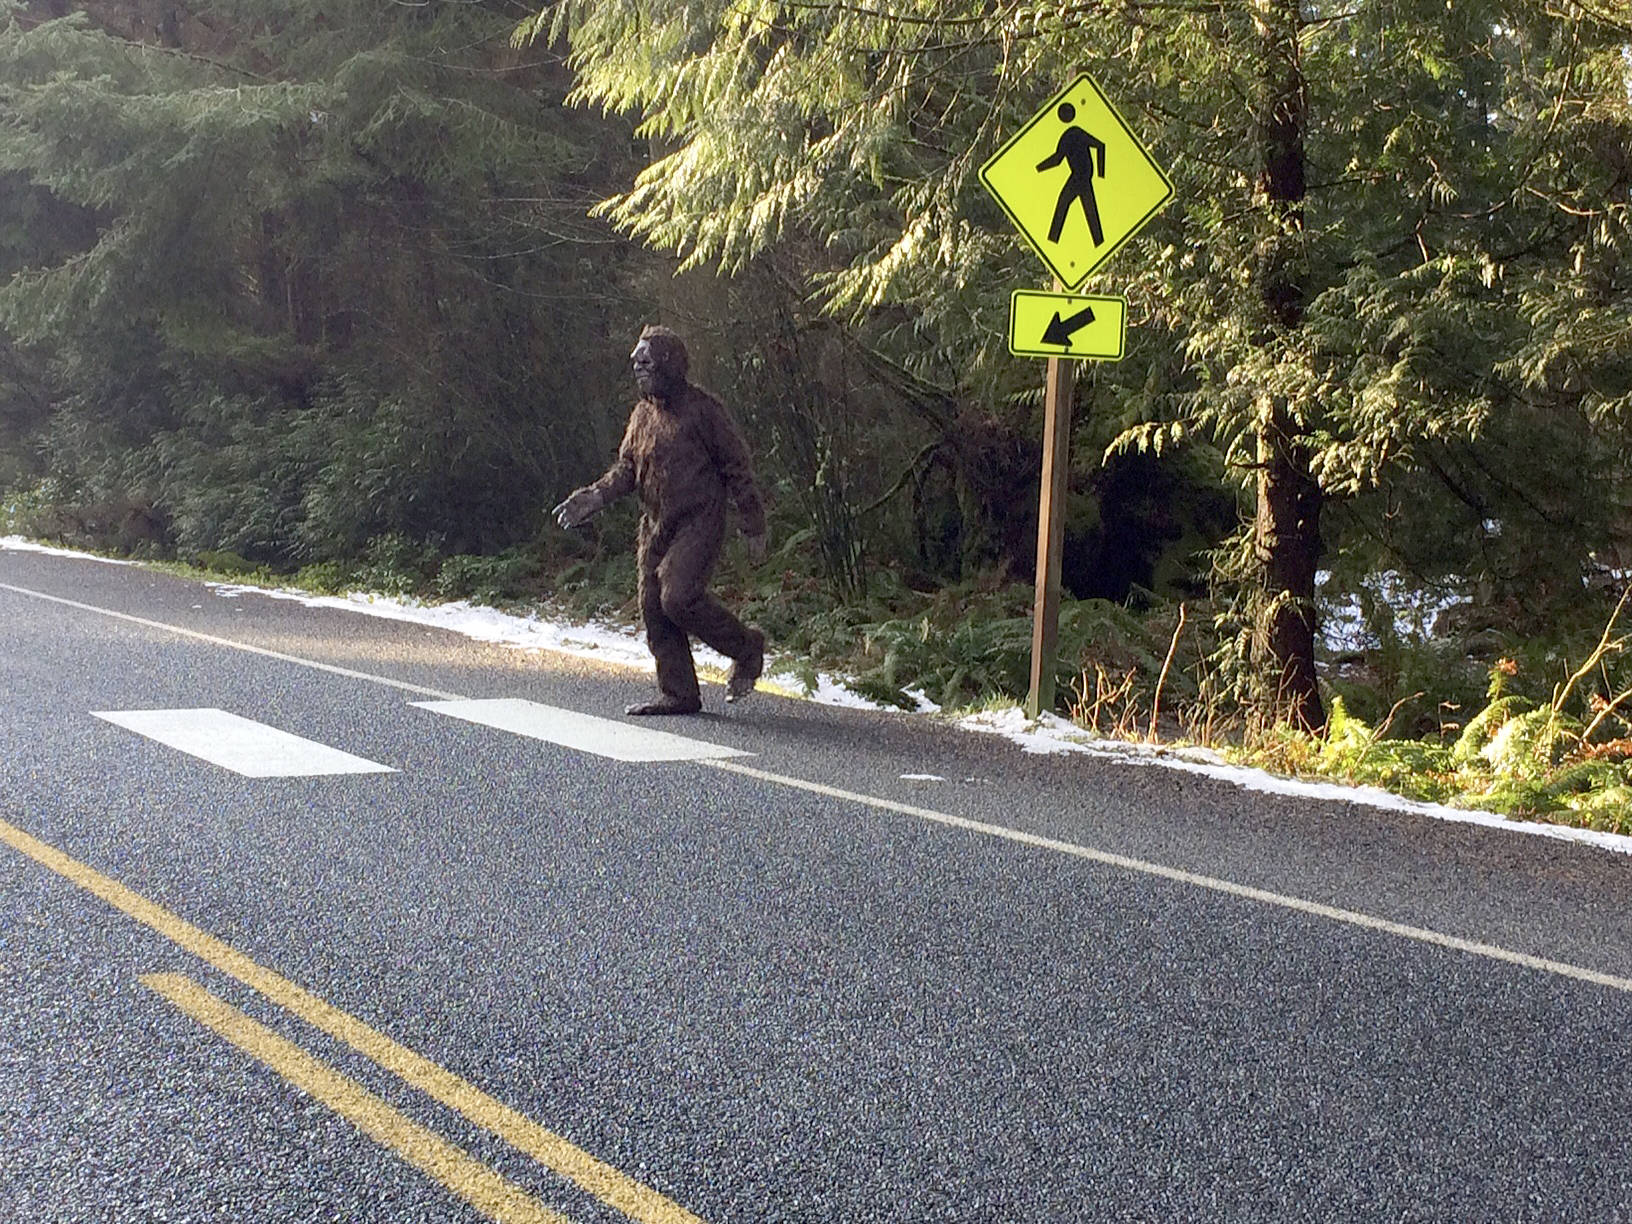 This Bigfoot-looking creature coming out of South Whidbey State Park was spotted by Maribeth Crandell of Island Transit Wednesday. The hairy being looked both ways and then used the crosswalk, she said.